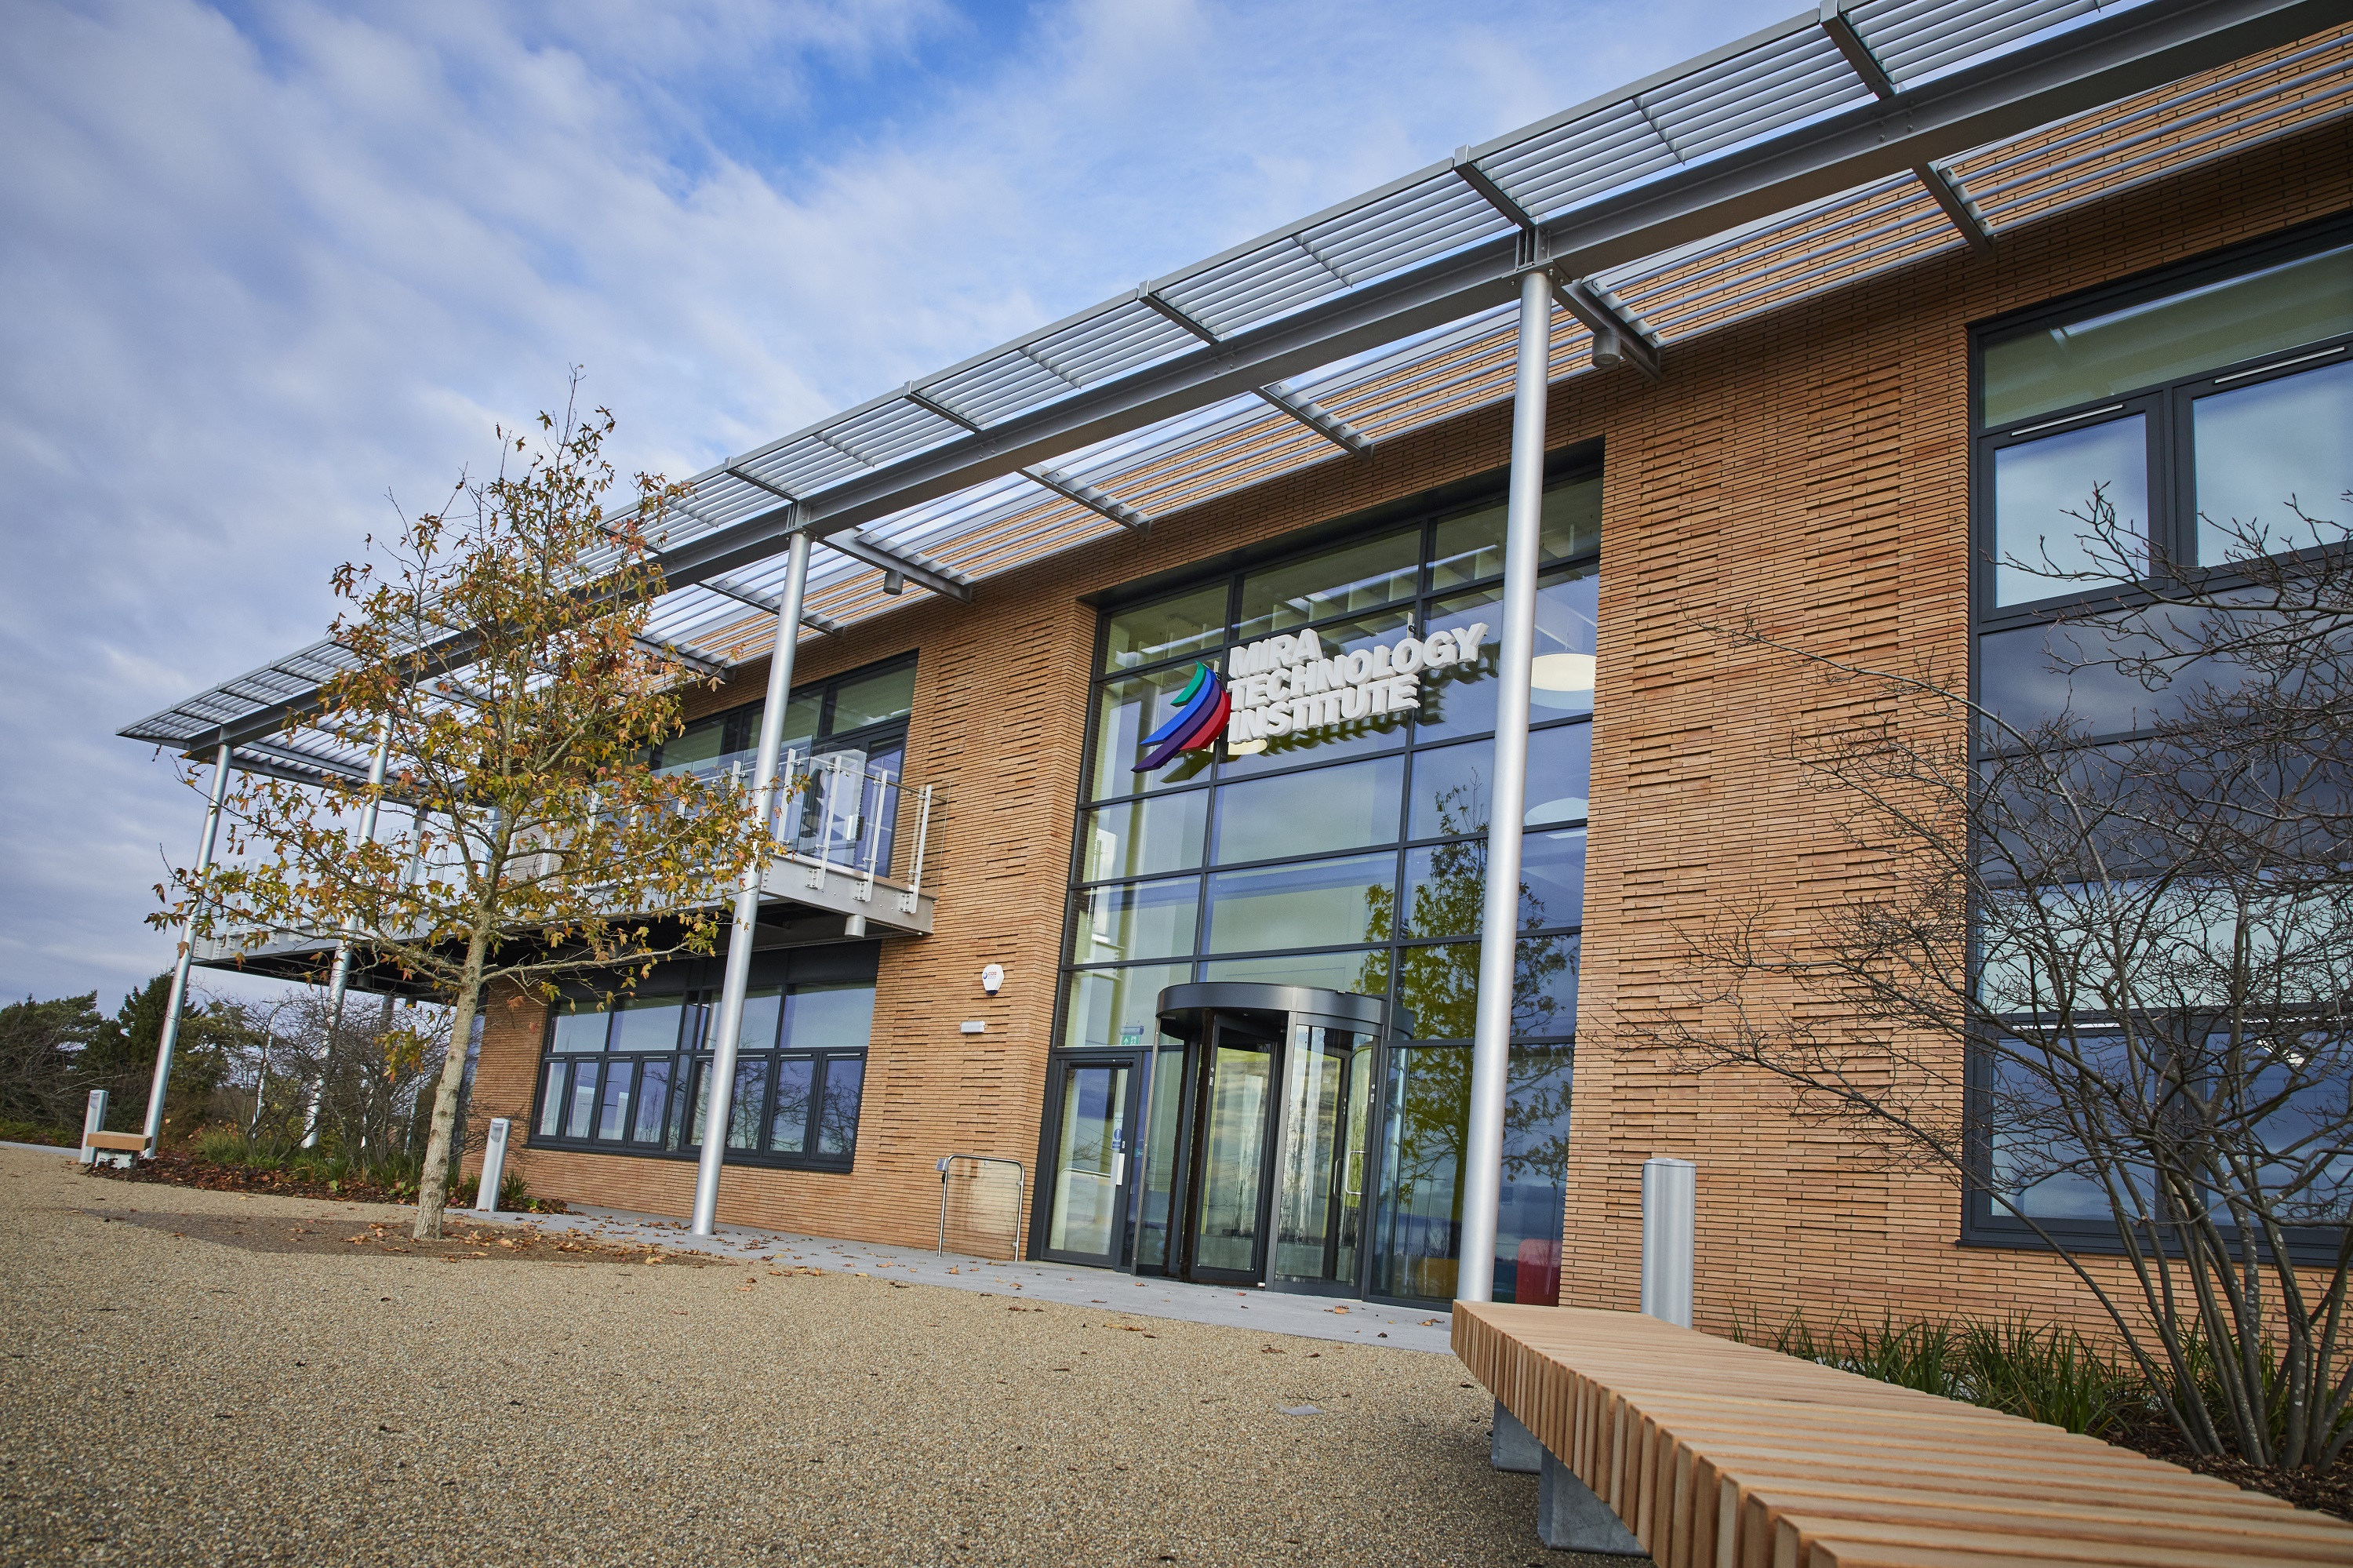 Specialist Automotive Global Skills Centre Opens Its Doors at MIRA Technology Park